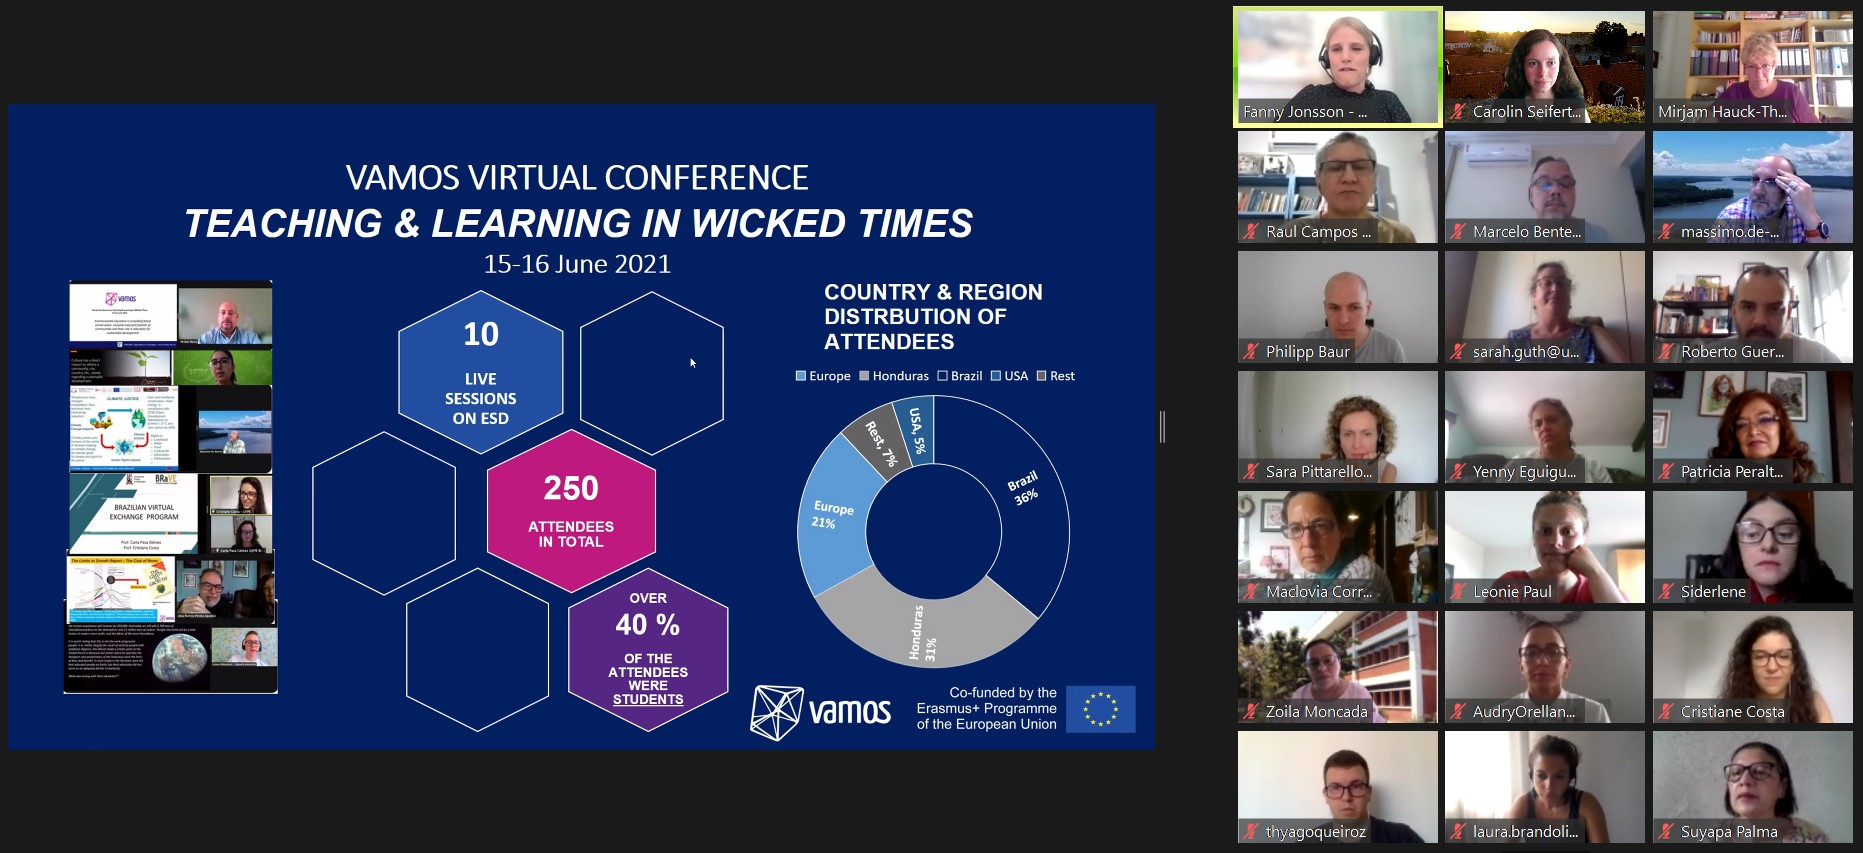 Our virtual conference